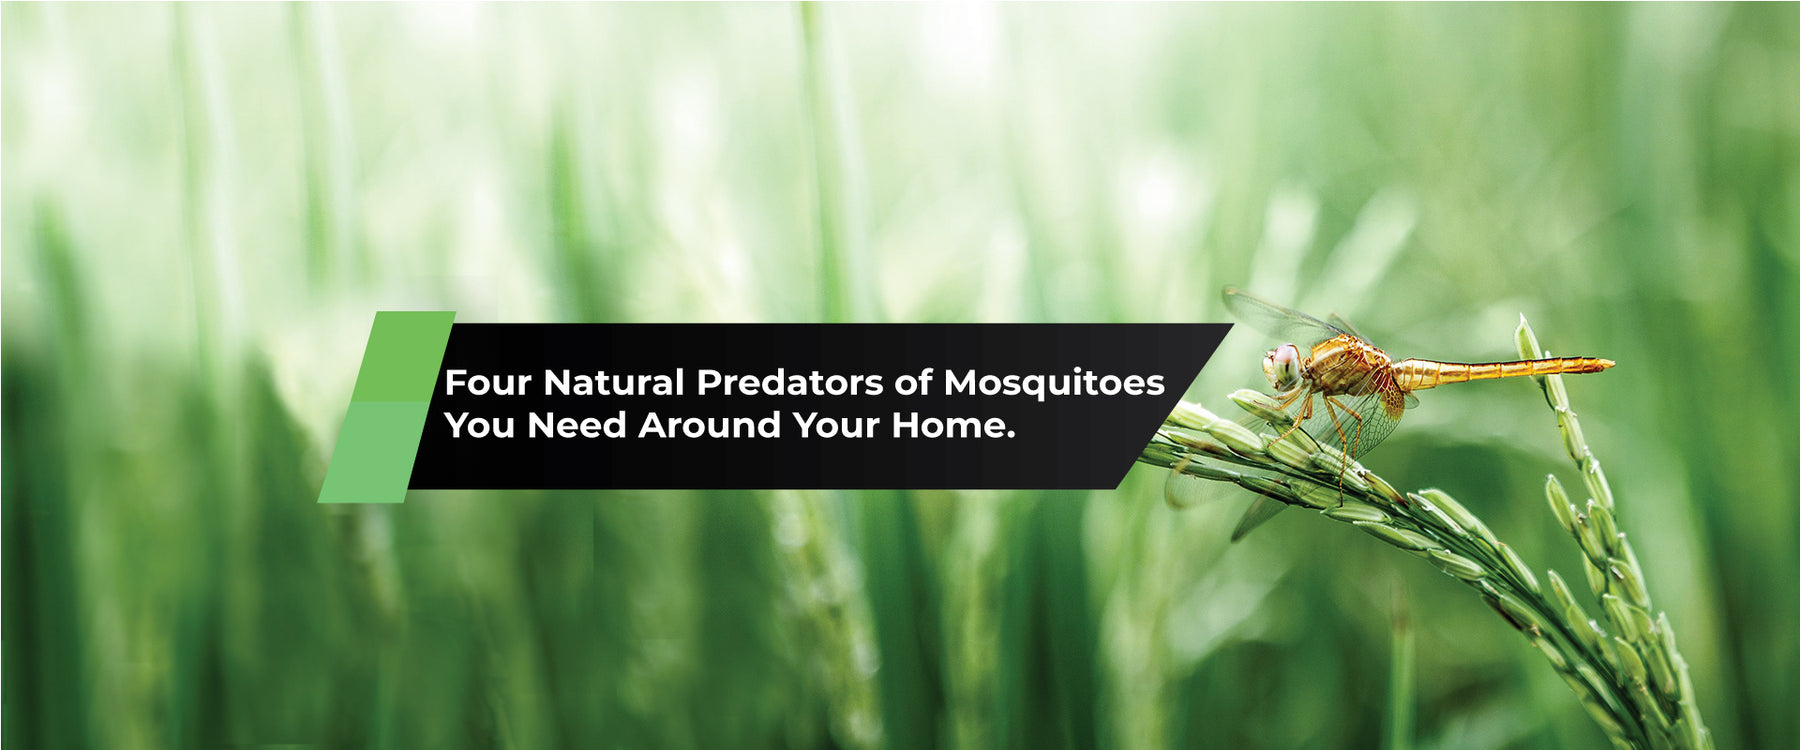 Four Natural Predators of Mosquitoes You Need Around Your Home